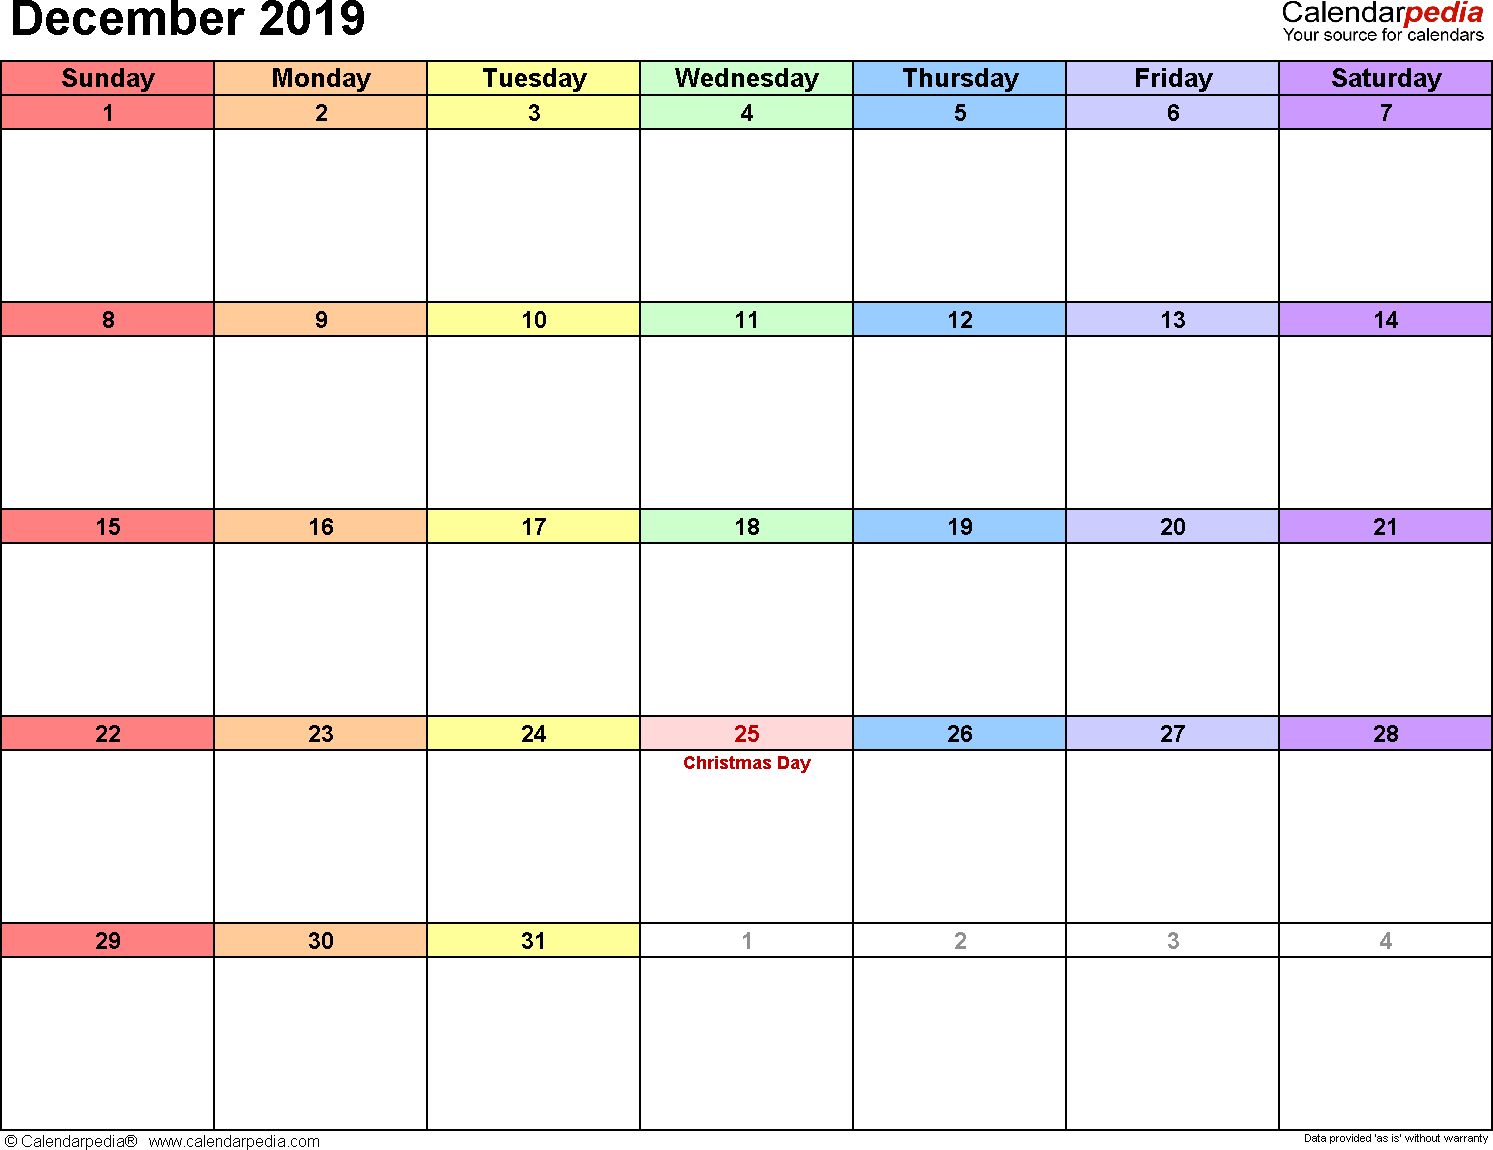 December 2019 Calendars For Word, Excel & Pdf for Monthly Calendar Template Printable December Start Monday